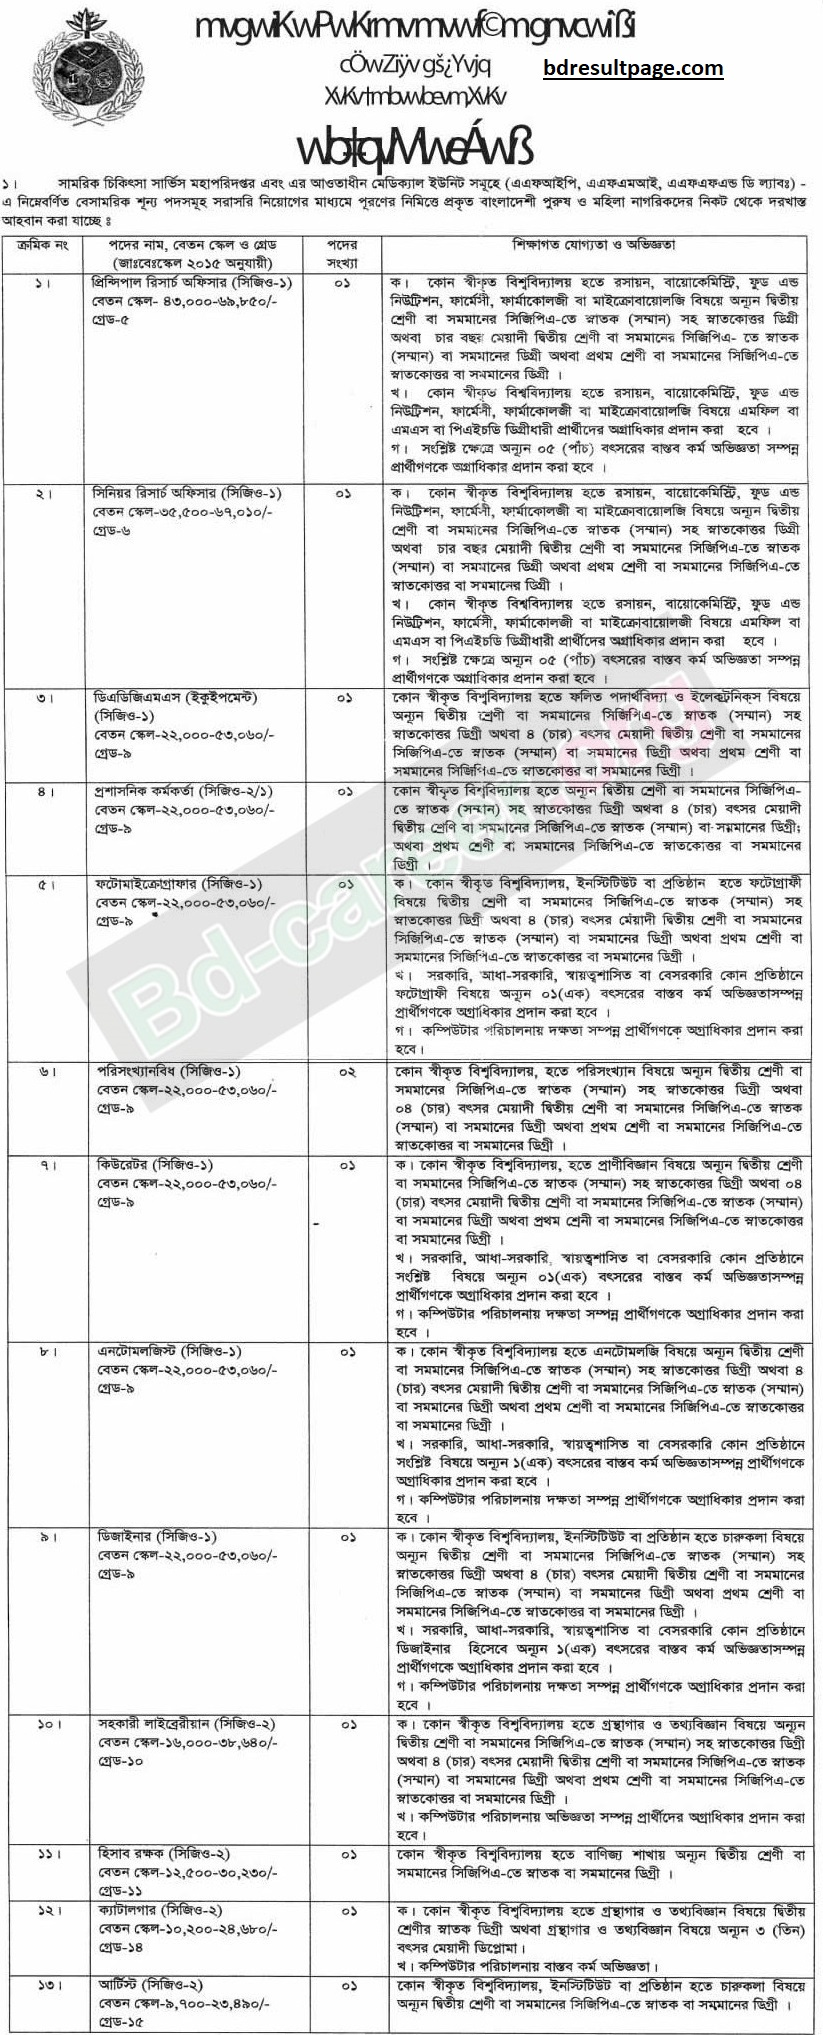 Directorate General Of Medical Service Job Circular 2017